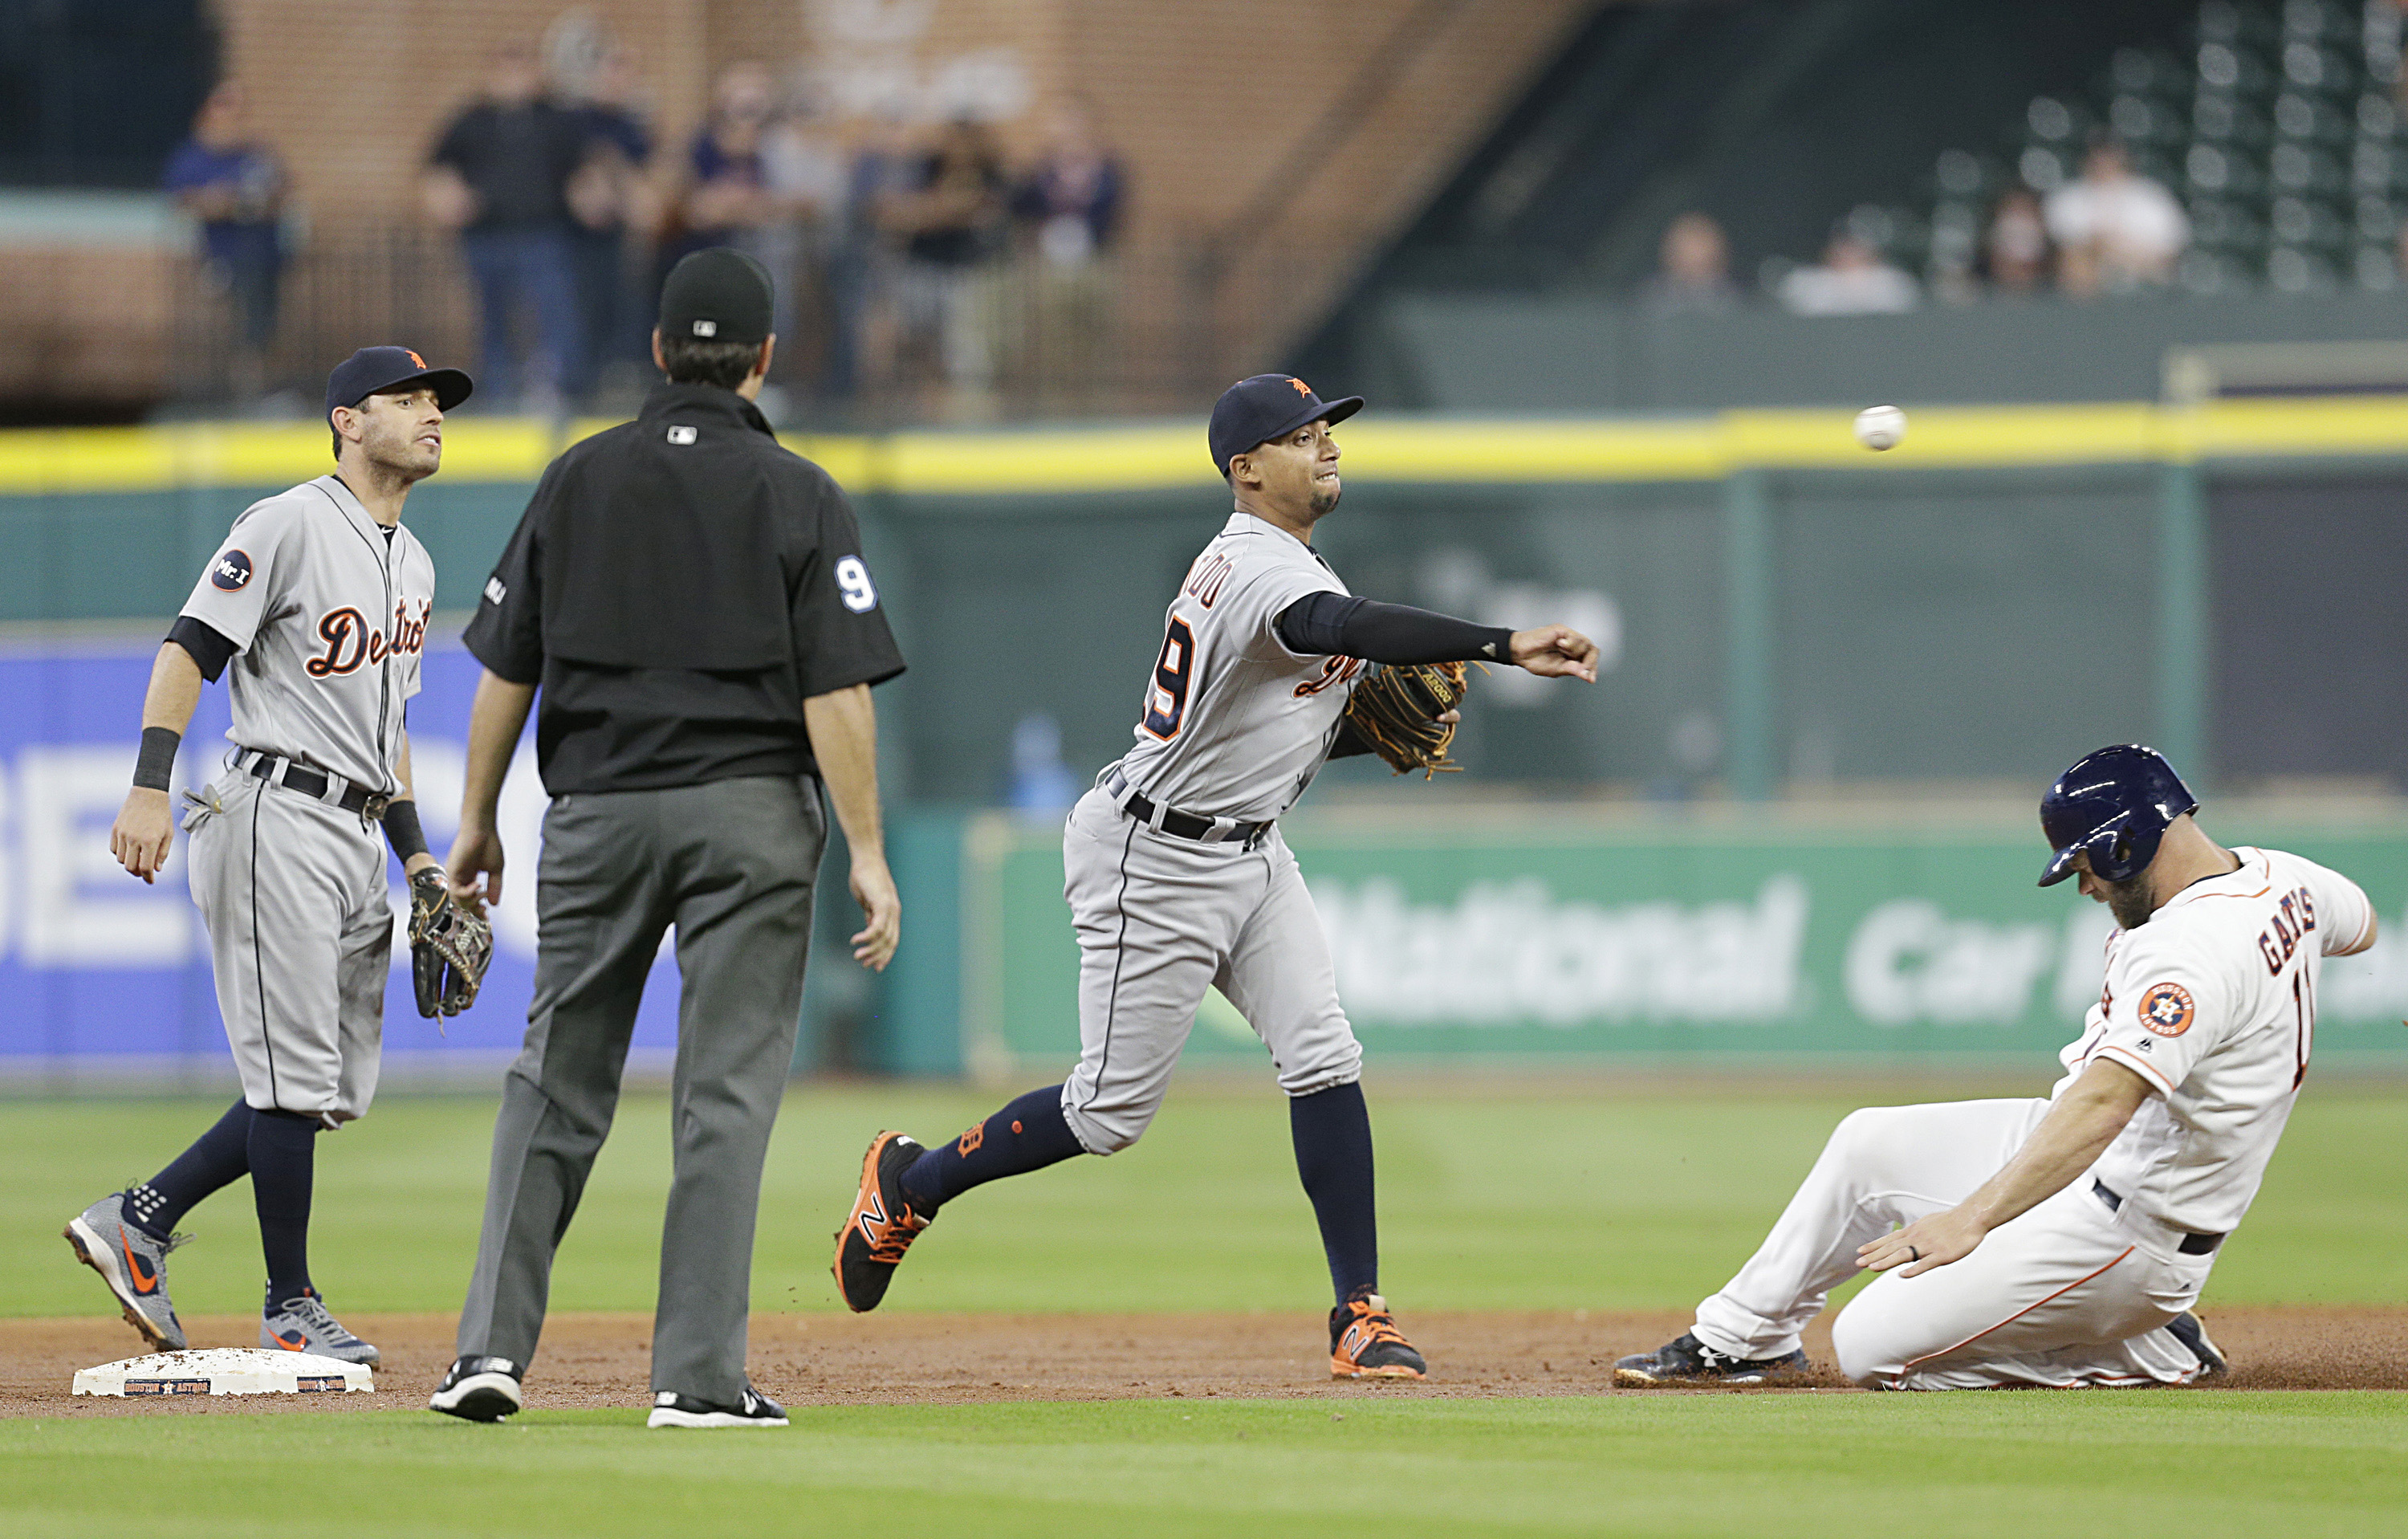 10070359-mlb-detroit-tigers-at-houston-astros